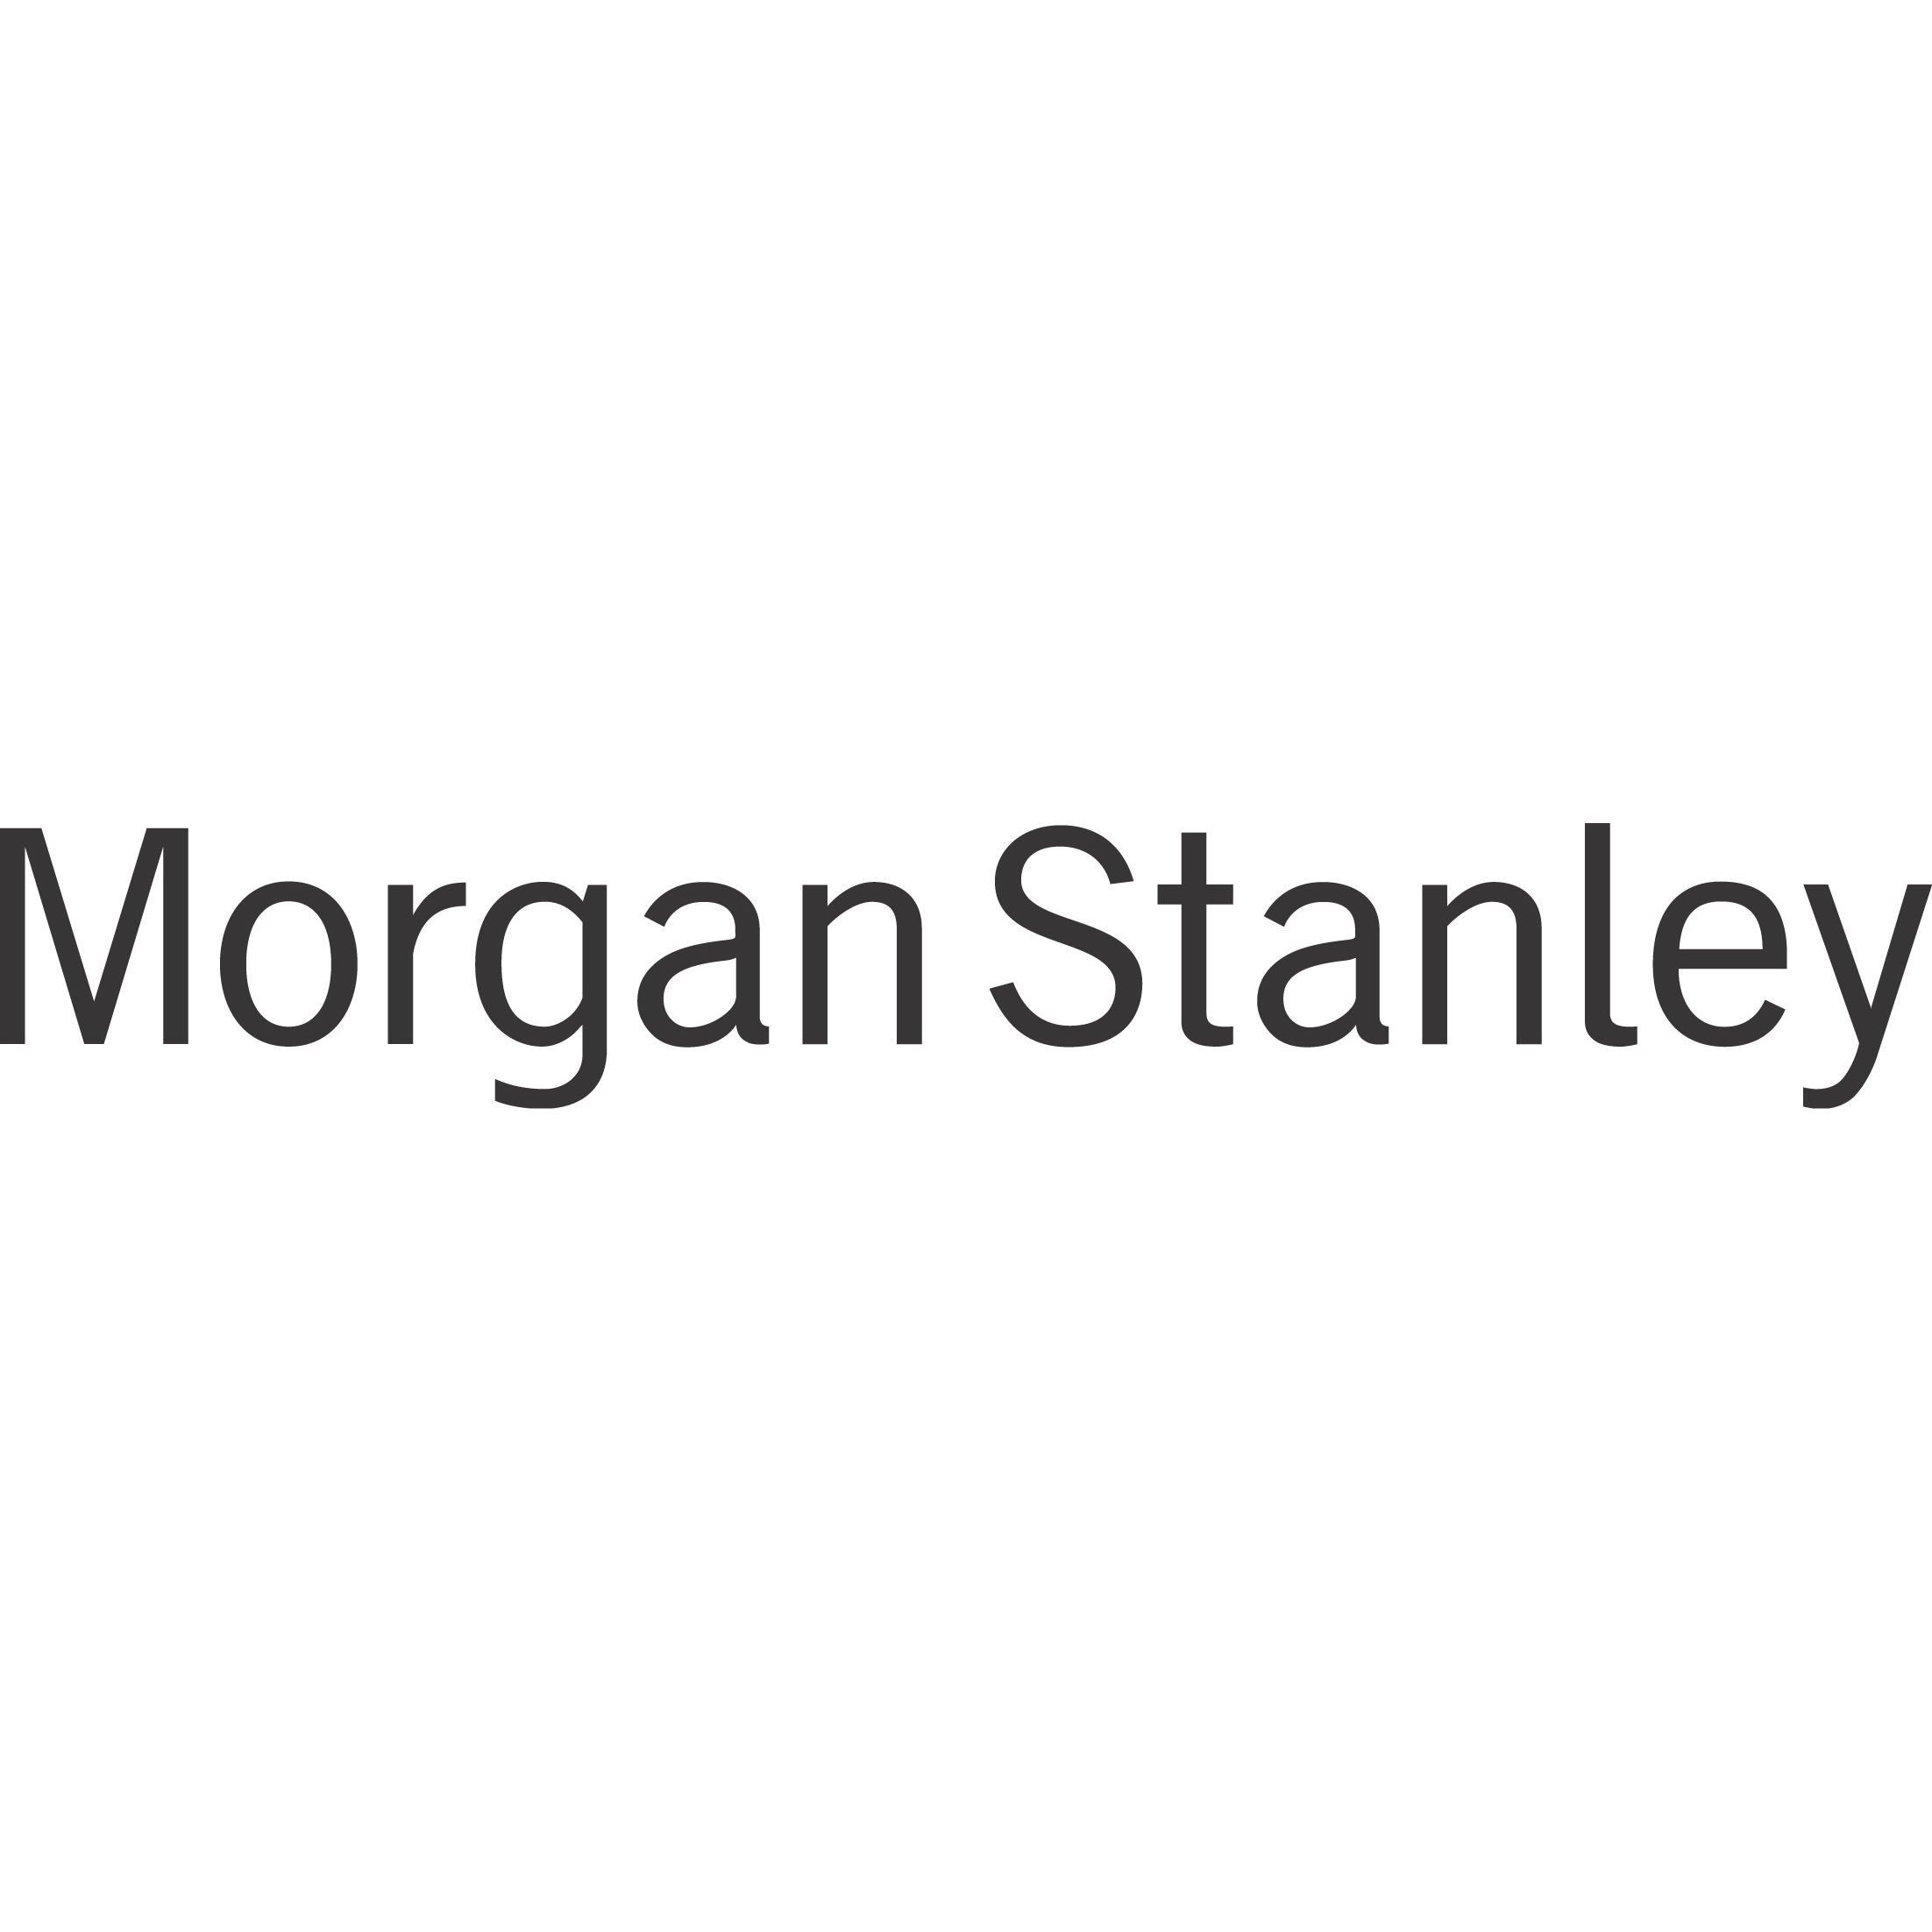 Jon C Sisco - Morgan Stanley | Financial Advisor in Red Bank,New Jersey